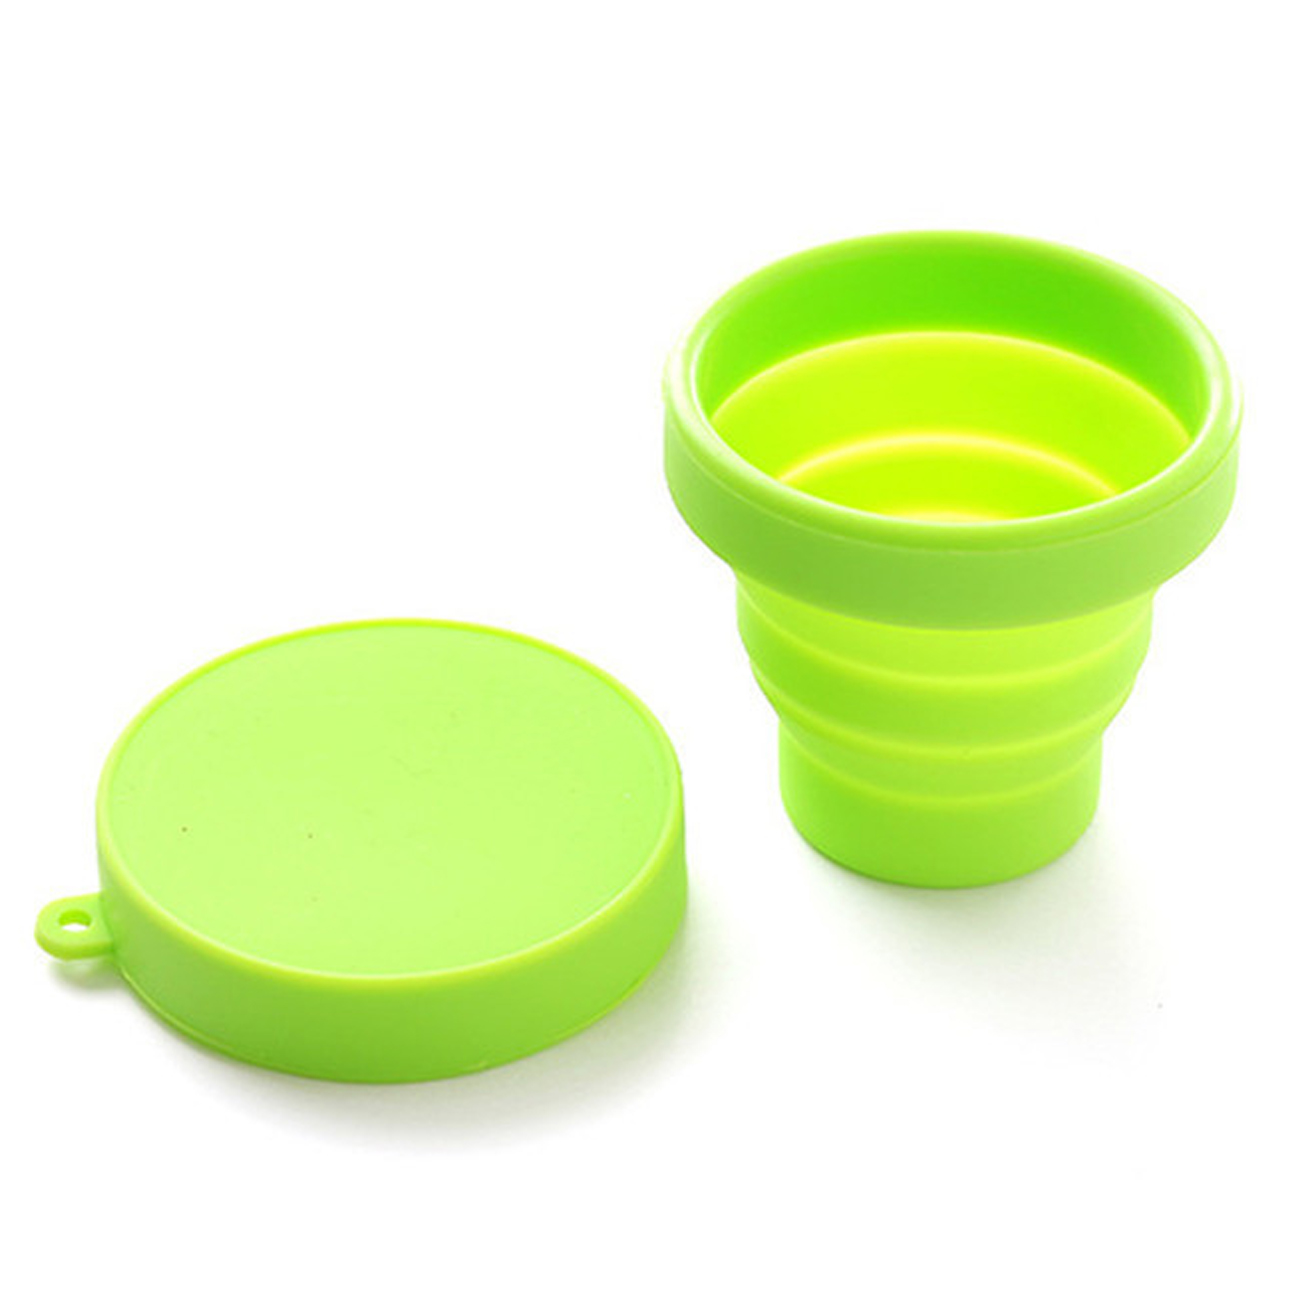 Foldable Menstrual Cup Sterilizer Feminine Hygiene Woman Lady Cup For Menstrual Period  Sterilizing Silicone Collapsible Cup